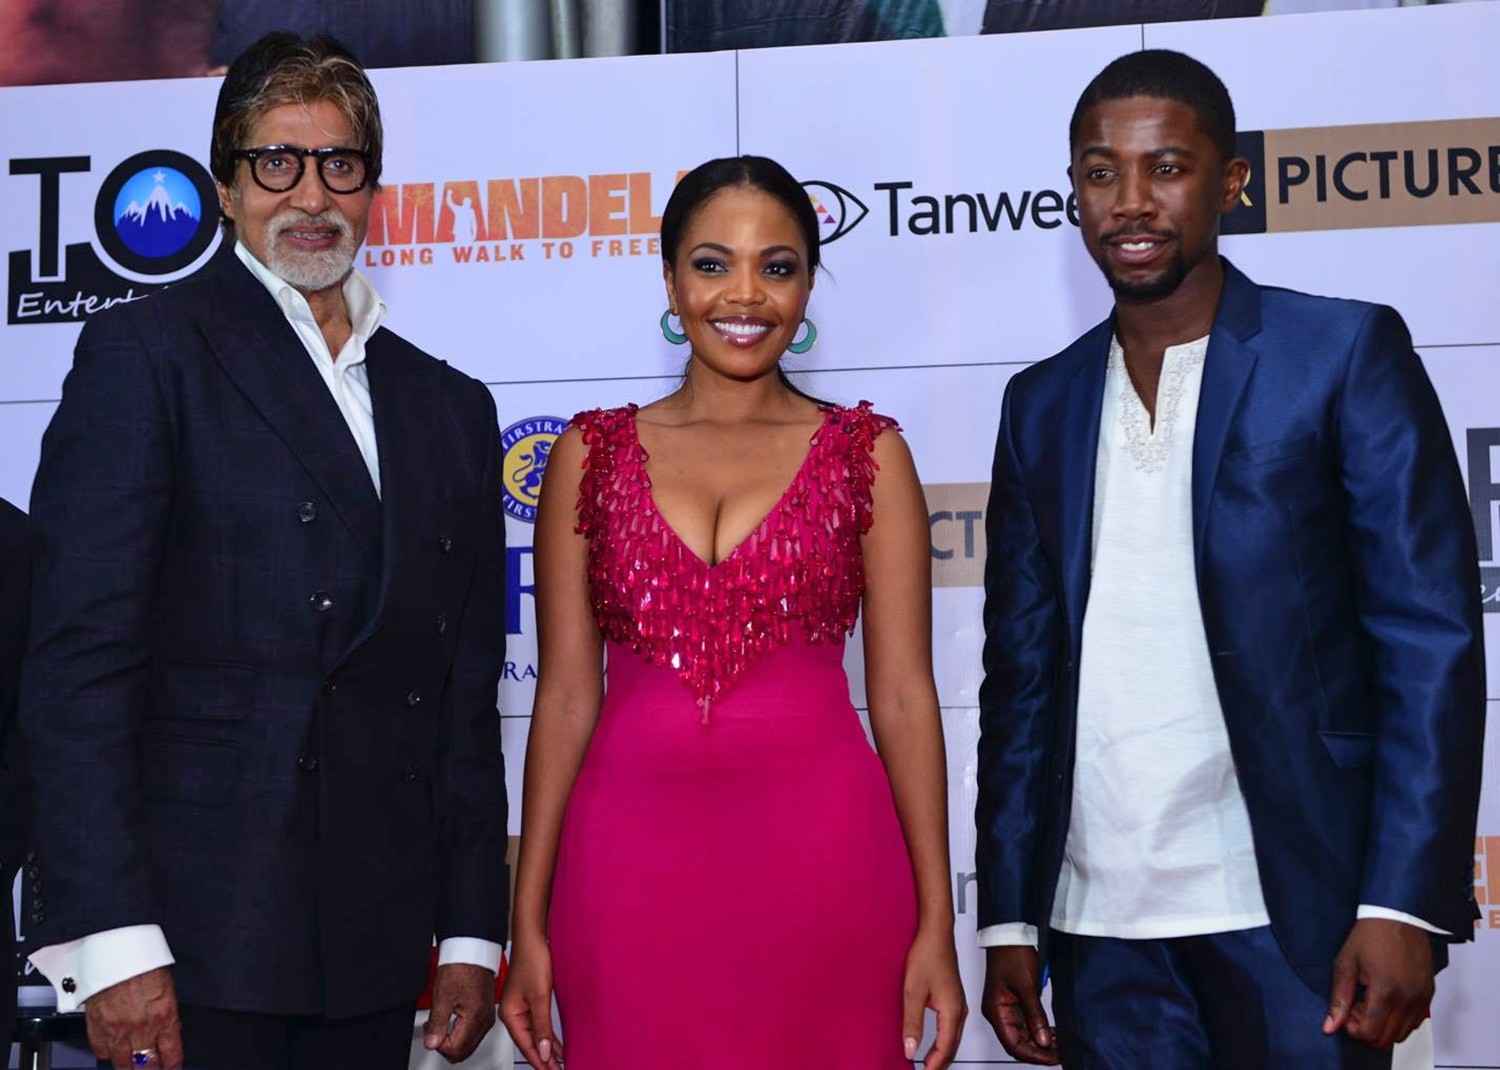 Amitabh Bachchan, Terry Pheto and Atandwa Kani at the Mumbai premiere / Videovision Entertainment (p)